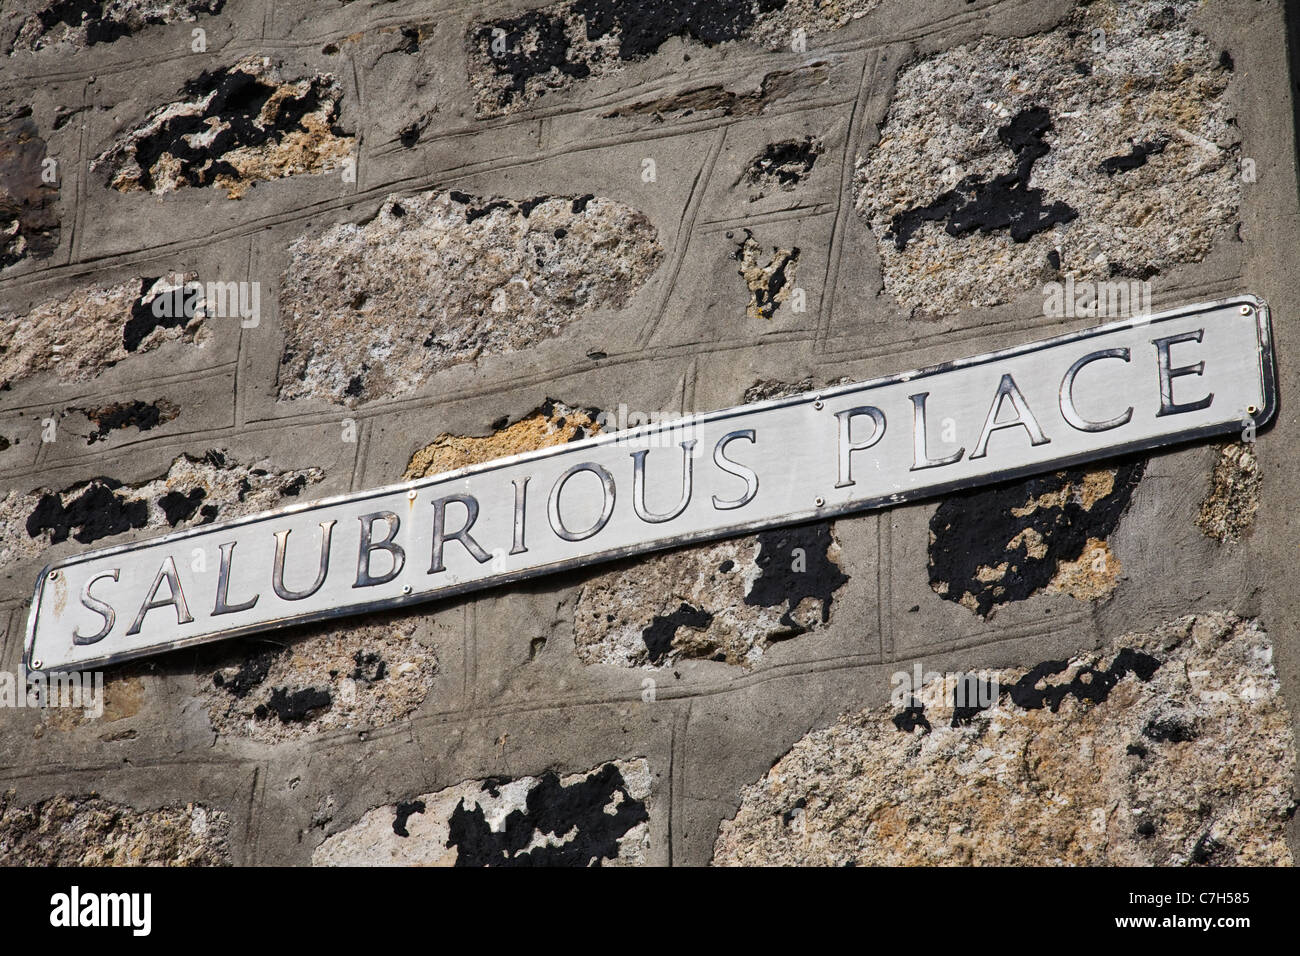 SALUBRIOUS PLACE street sign, St Ives. - Stock Image